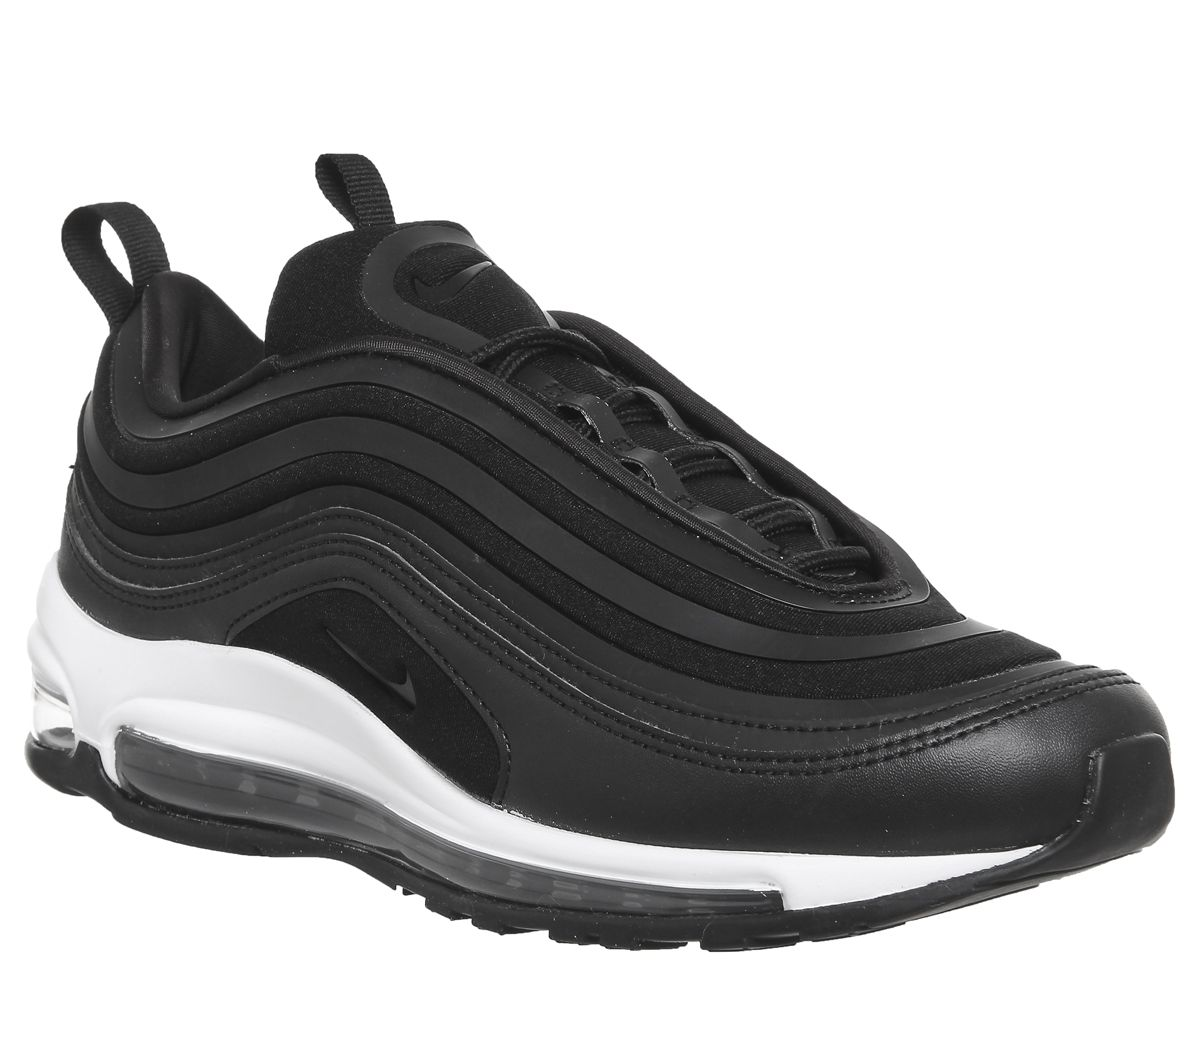 competitive price bf212 3ded5 Nike Air Max 97 Ultra Trainers Black Black White - Unisex Sports